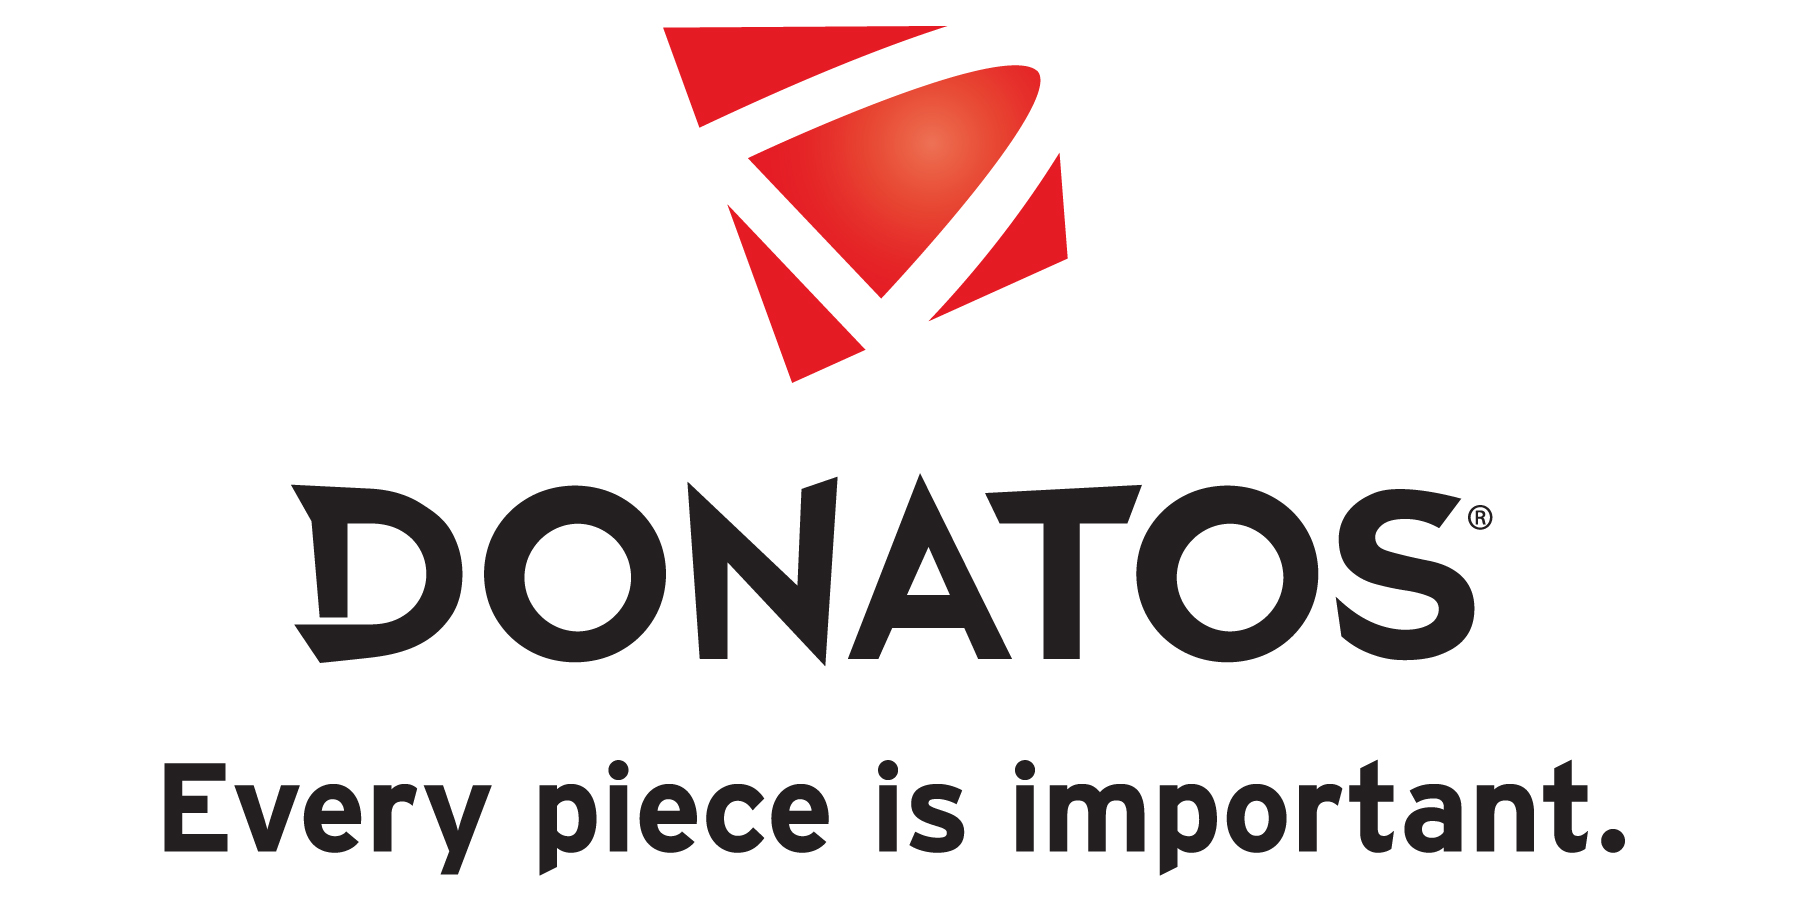 Donatos coupons and deals